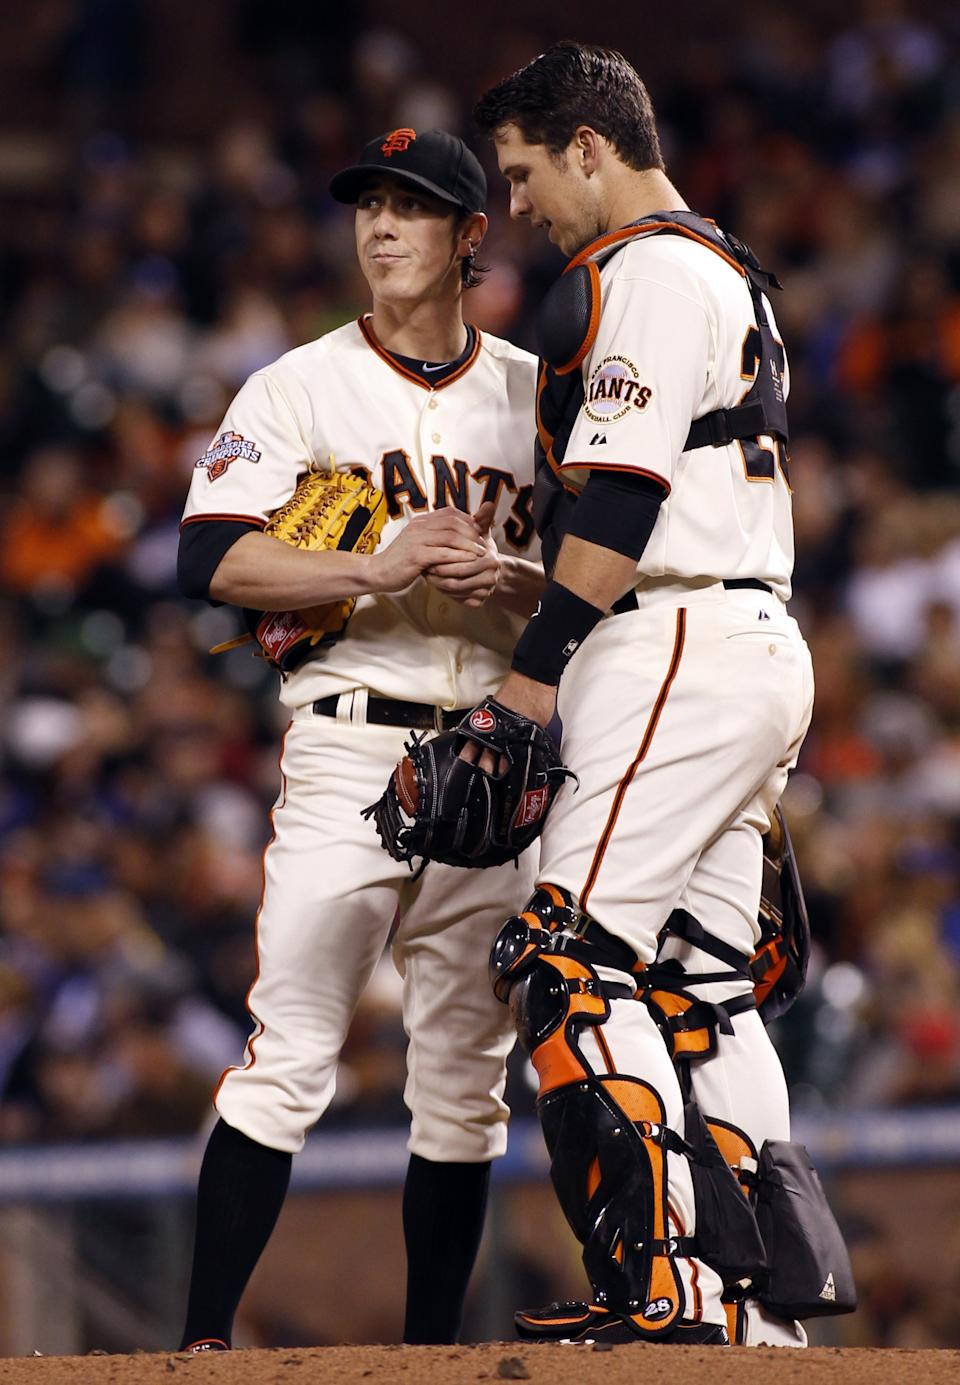 Giants miss playoffs after winning World Series